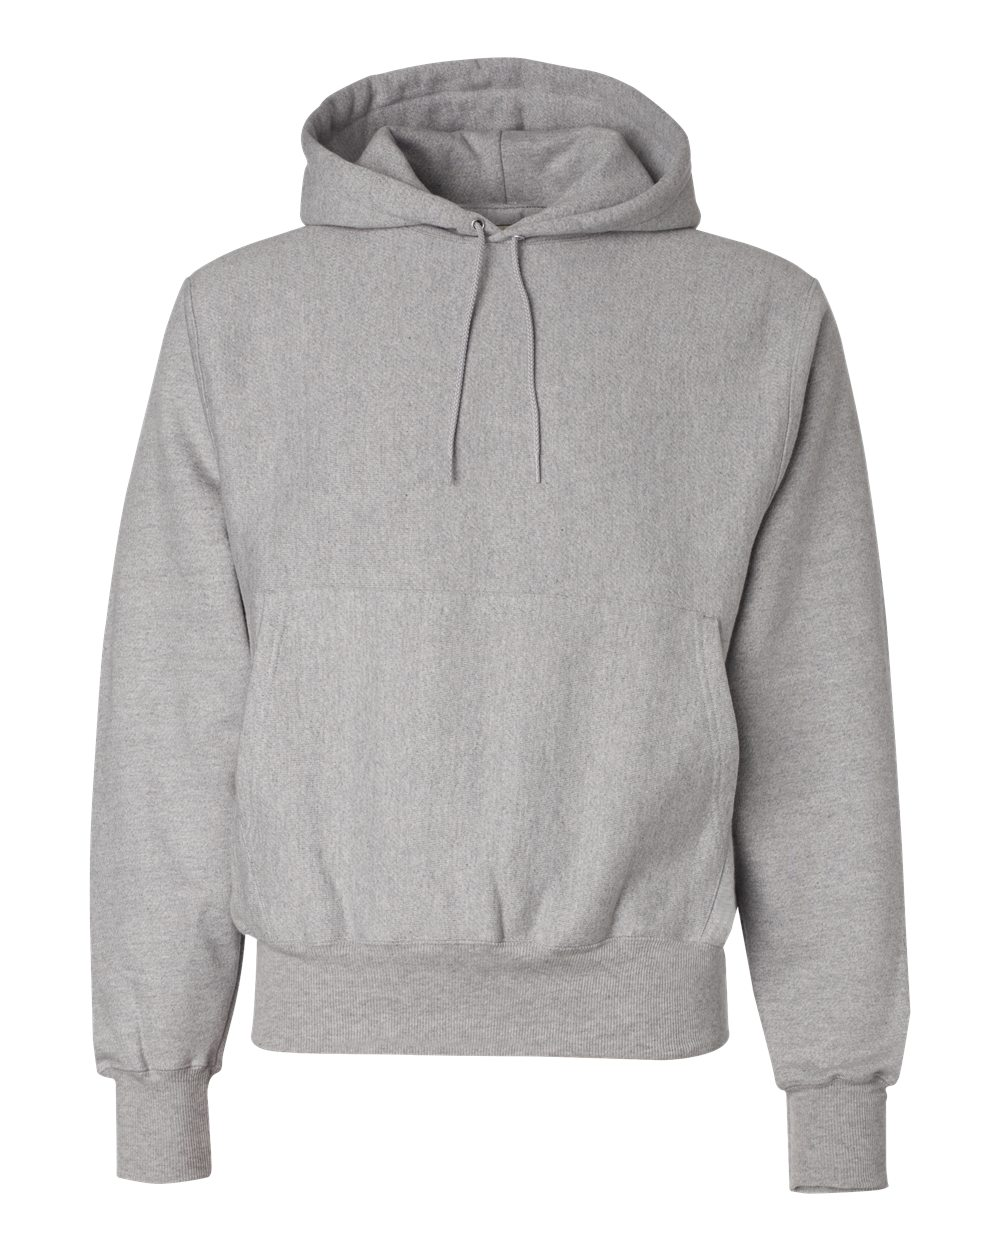 Champion-Mens-Reverse-Weave-Hooded-Pullover-Sweatshirt-S101-up-to-3XL thumbnail 36